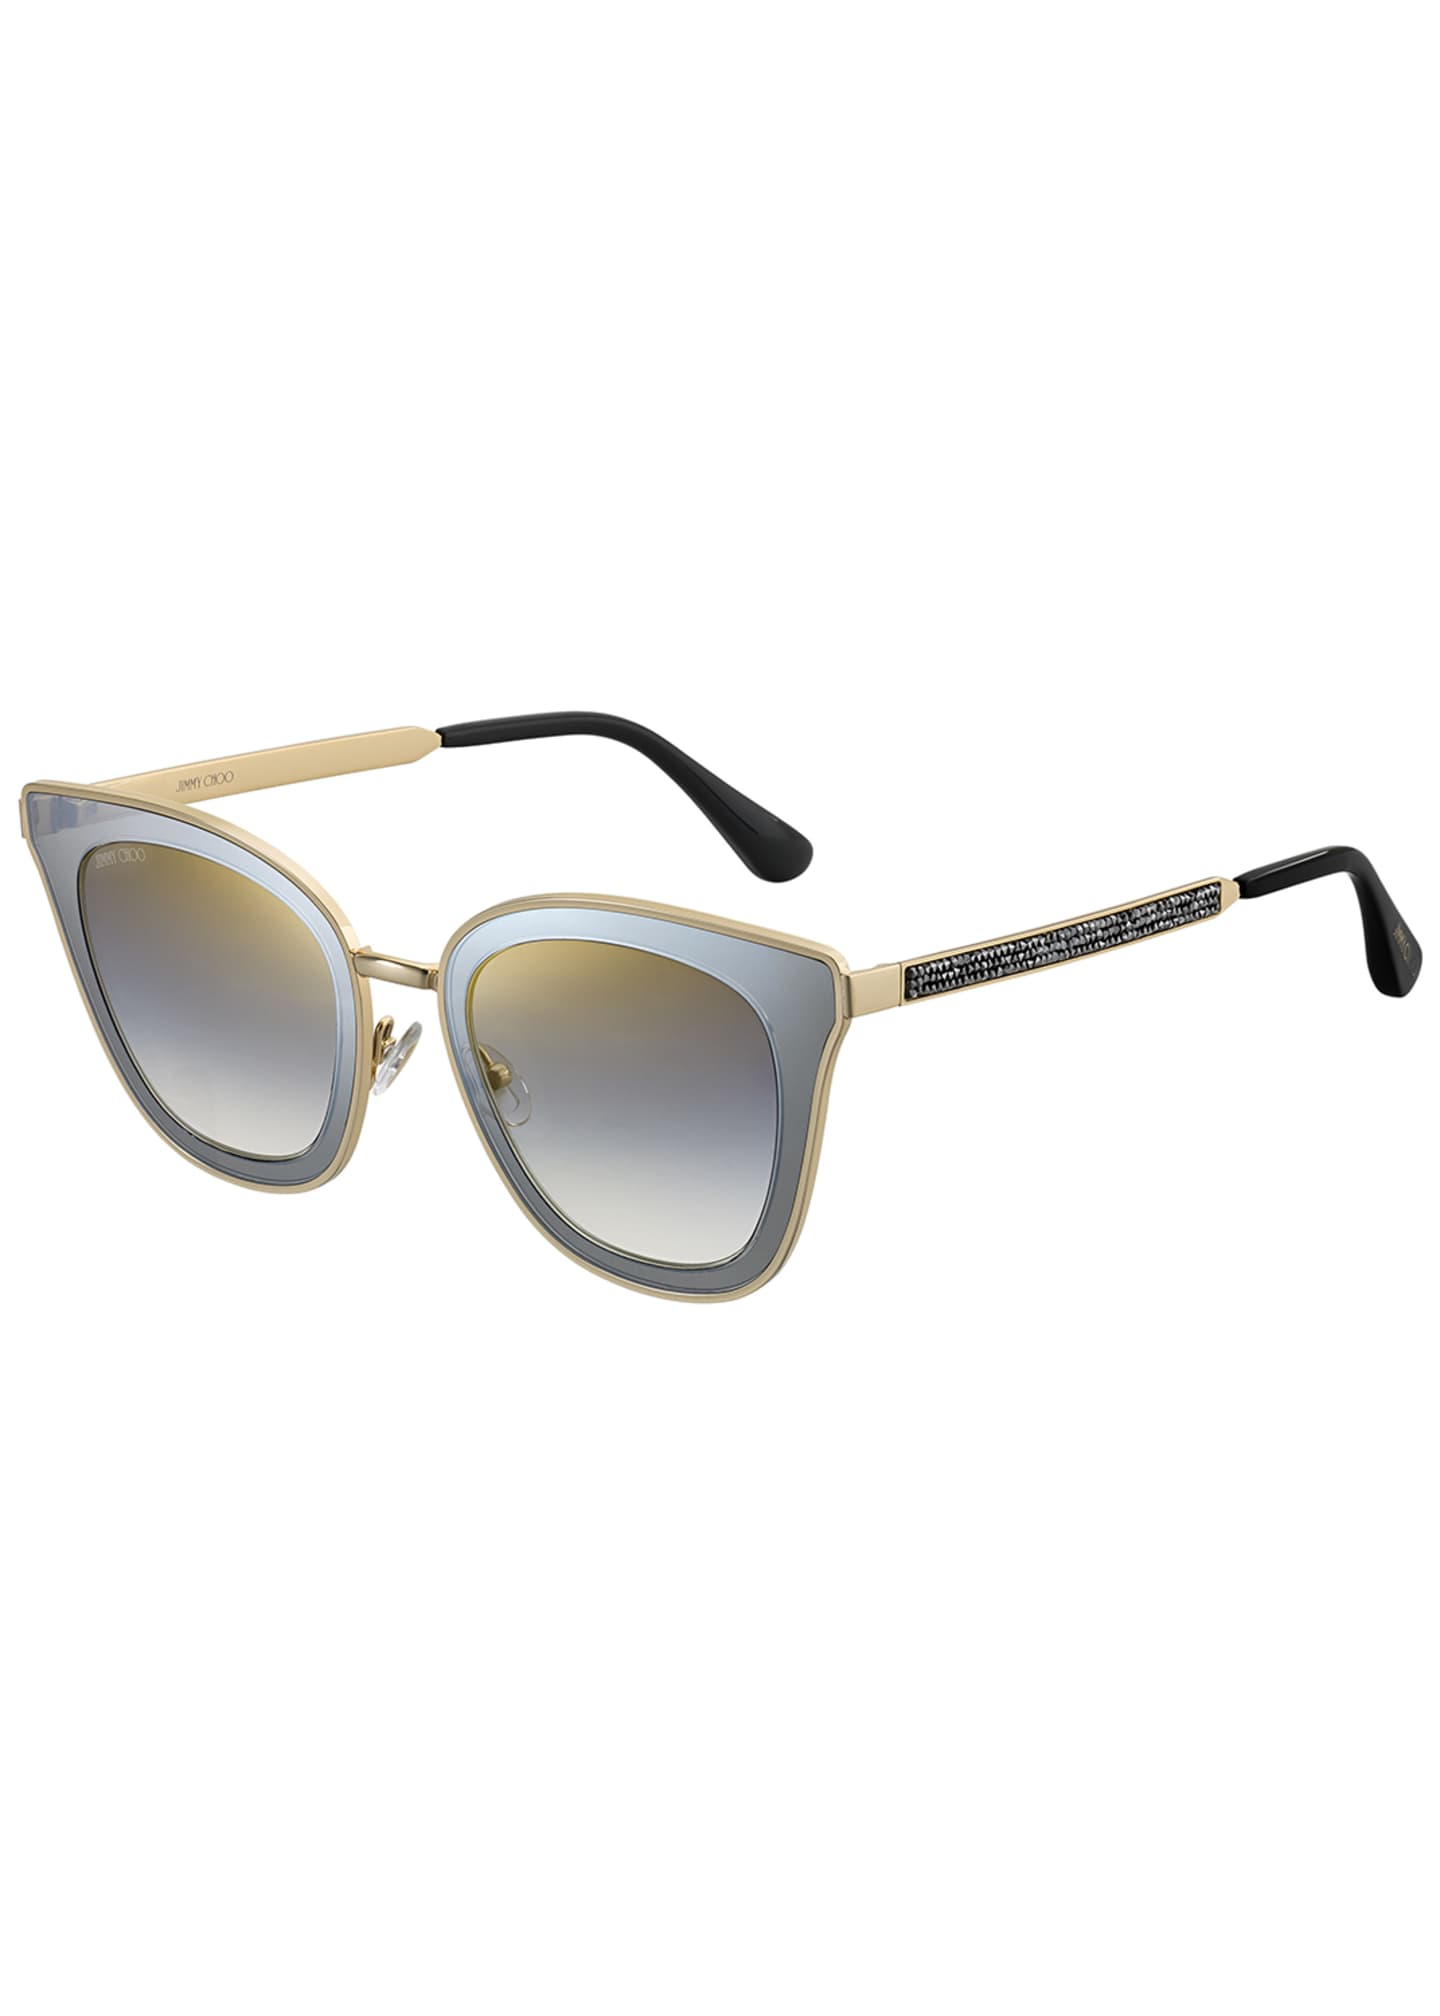 Jimmy Choo Lorys Cat-Eye Mirrored Sunglasses w/ Glittered